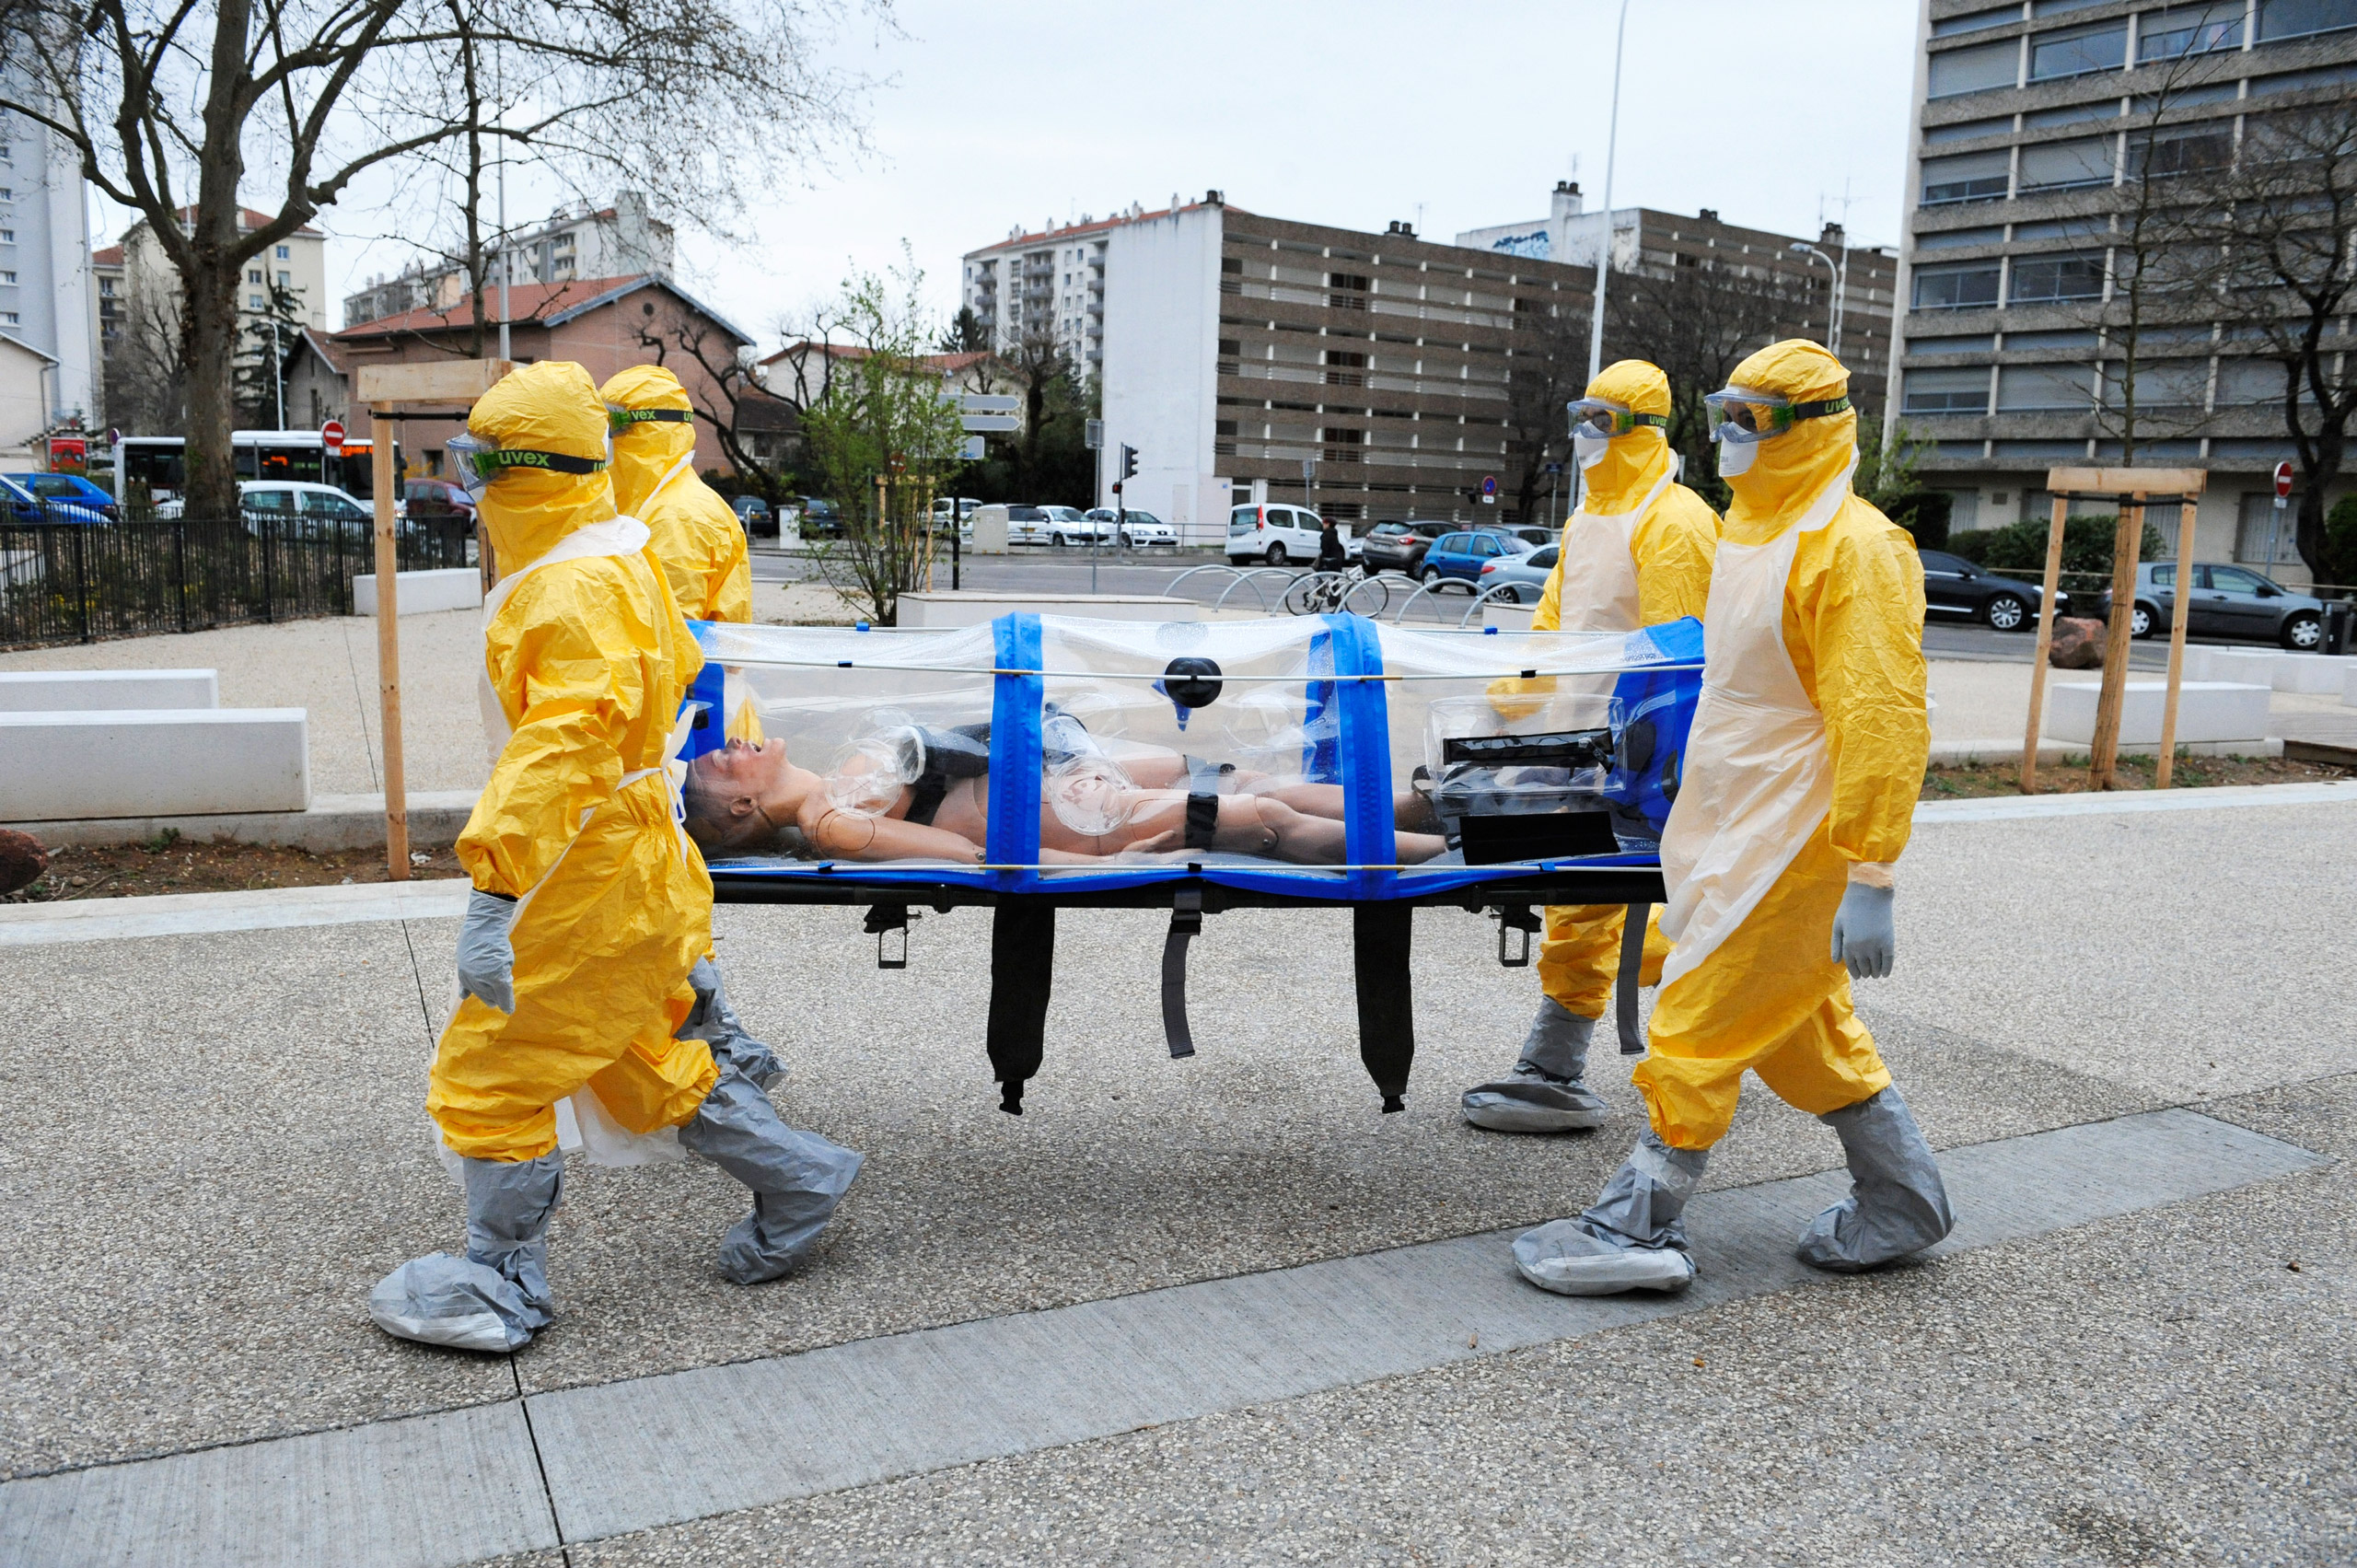 A dummy body is transported during an Ebola drill in Lyon, France, in 2015